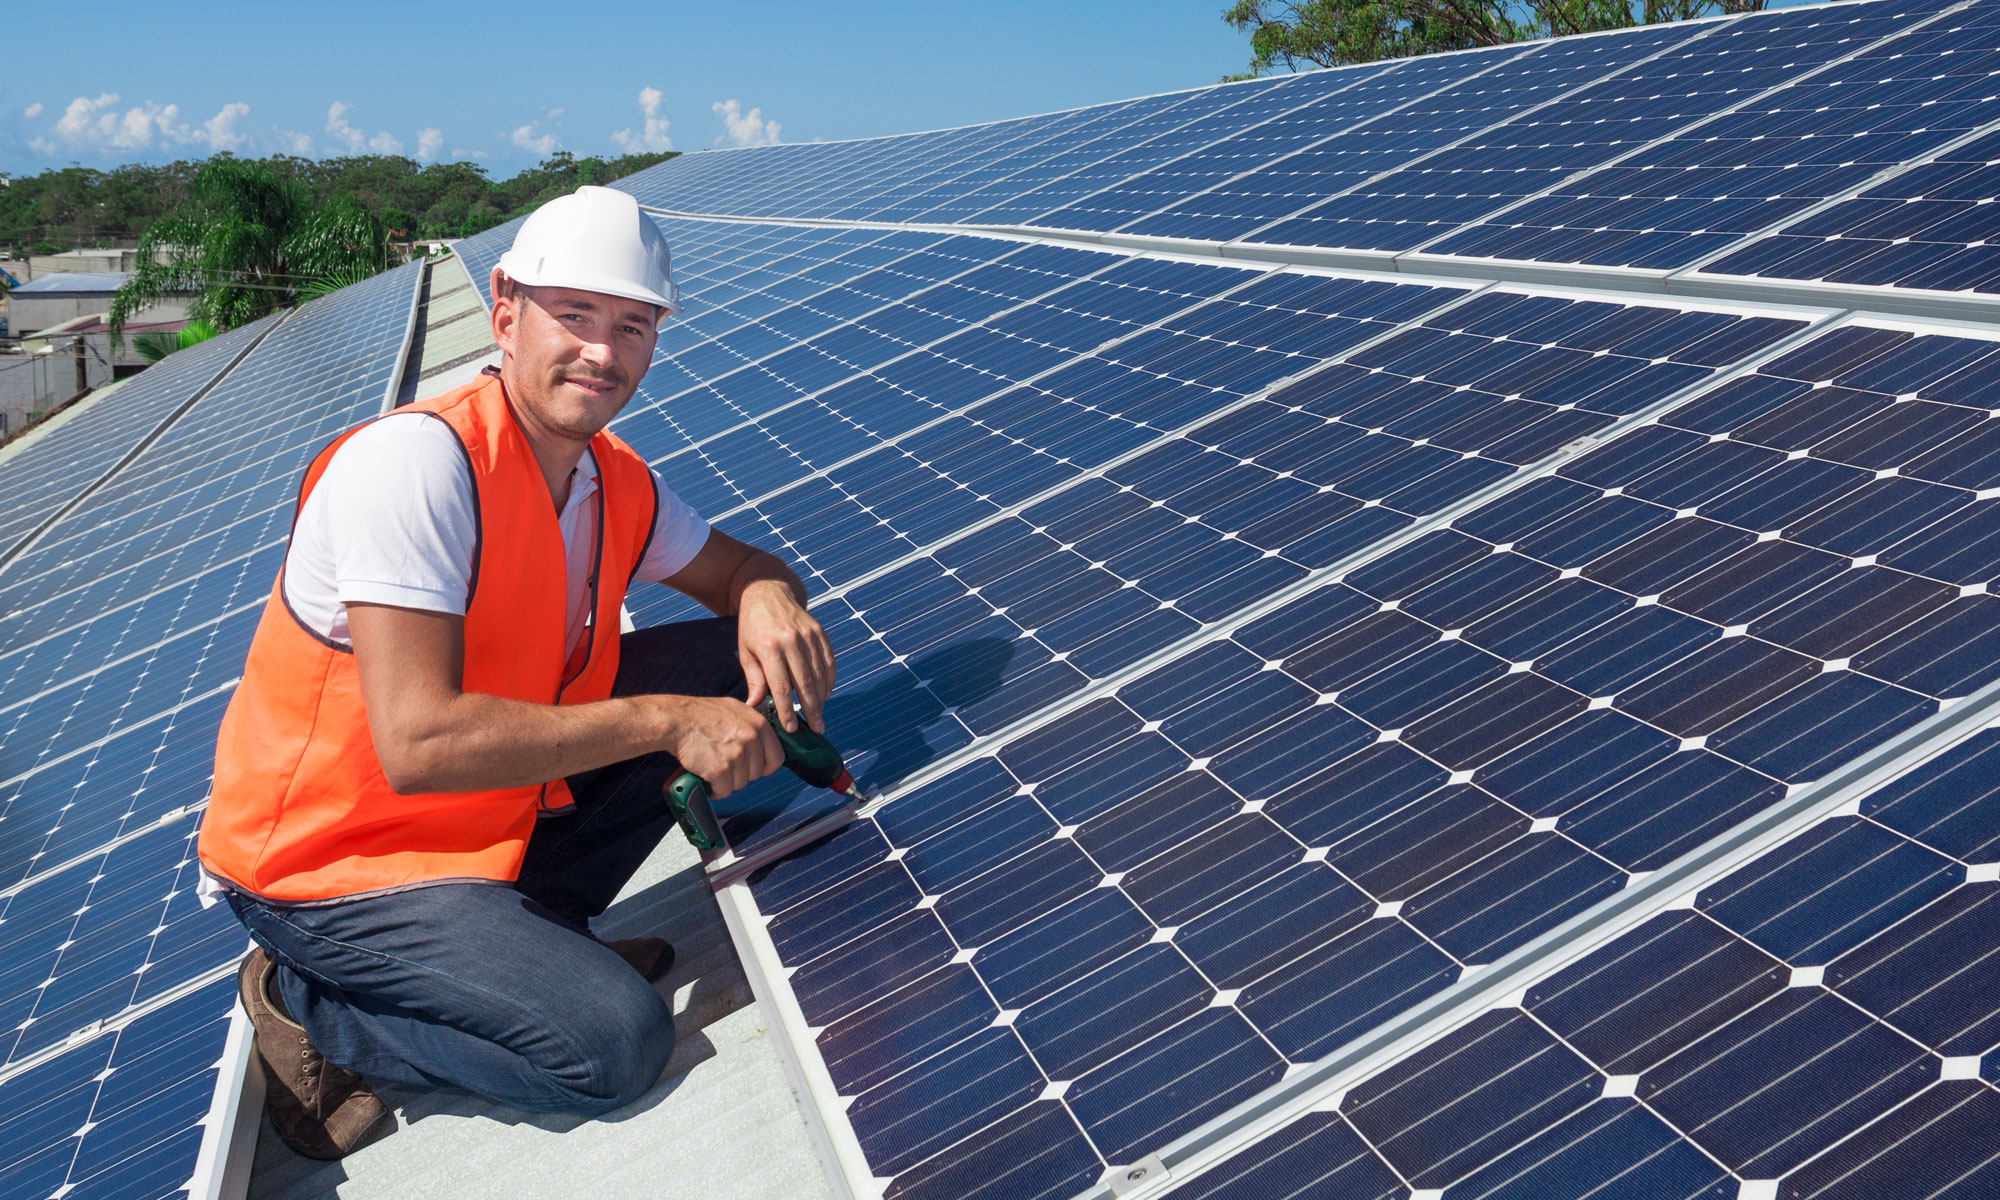 Building Back Better: A Roadmap to Expand Solar Access For All